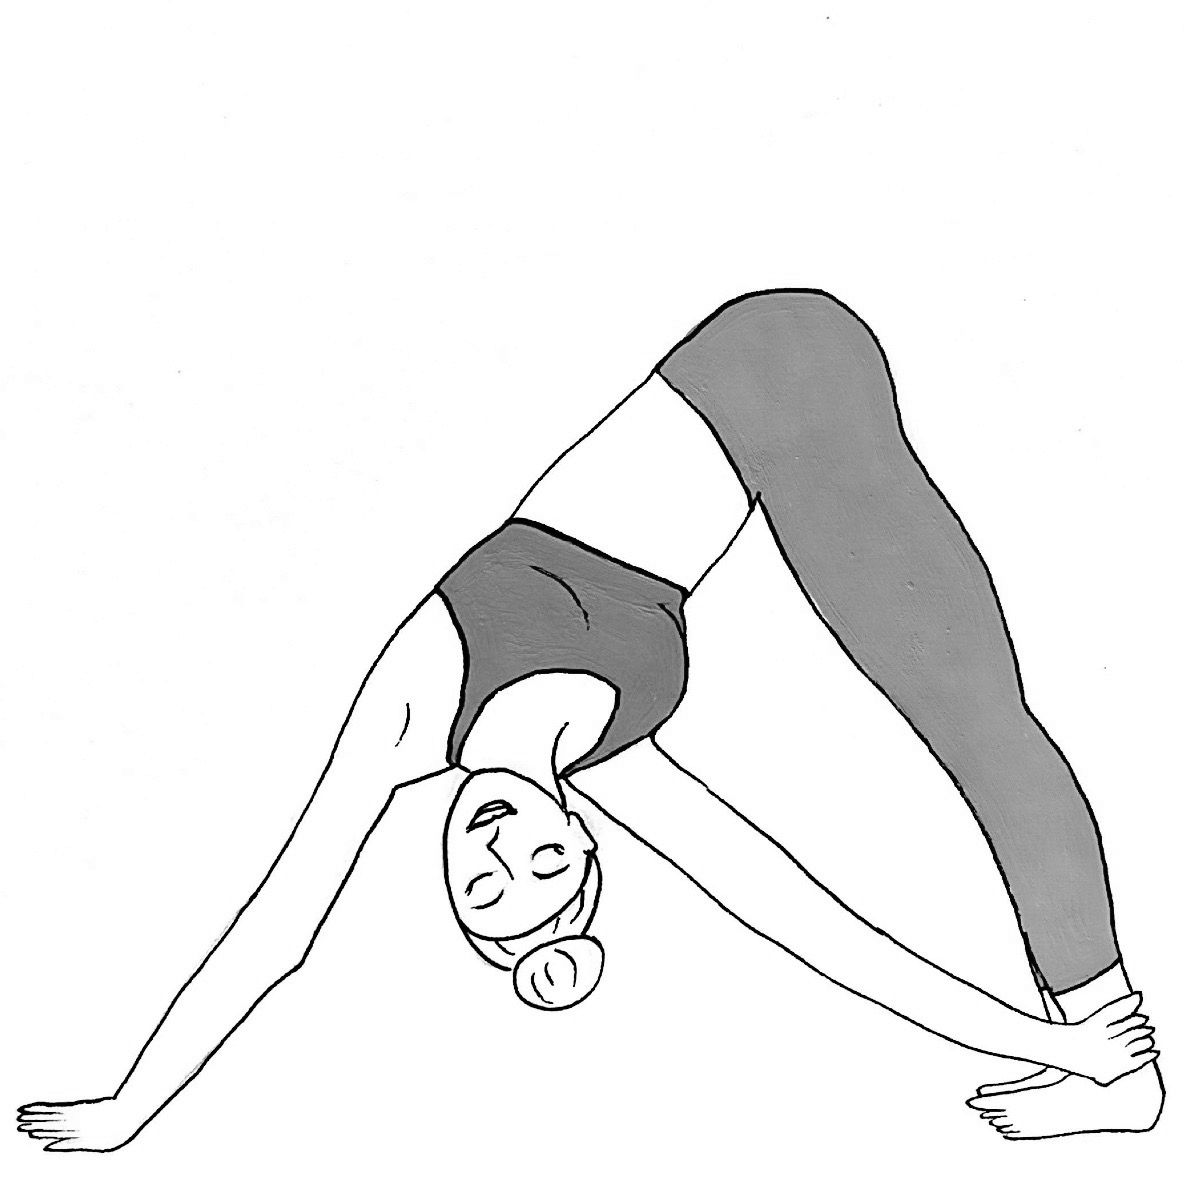 Revolved Downward Facing Dog - Parivritta Adho Mukha Svanasana